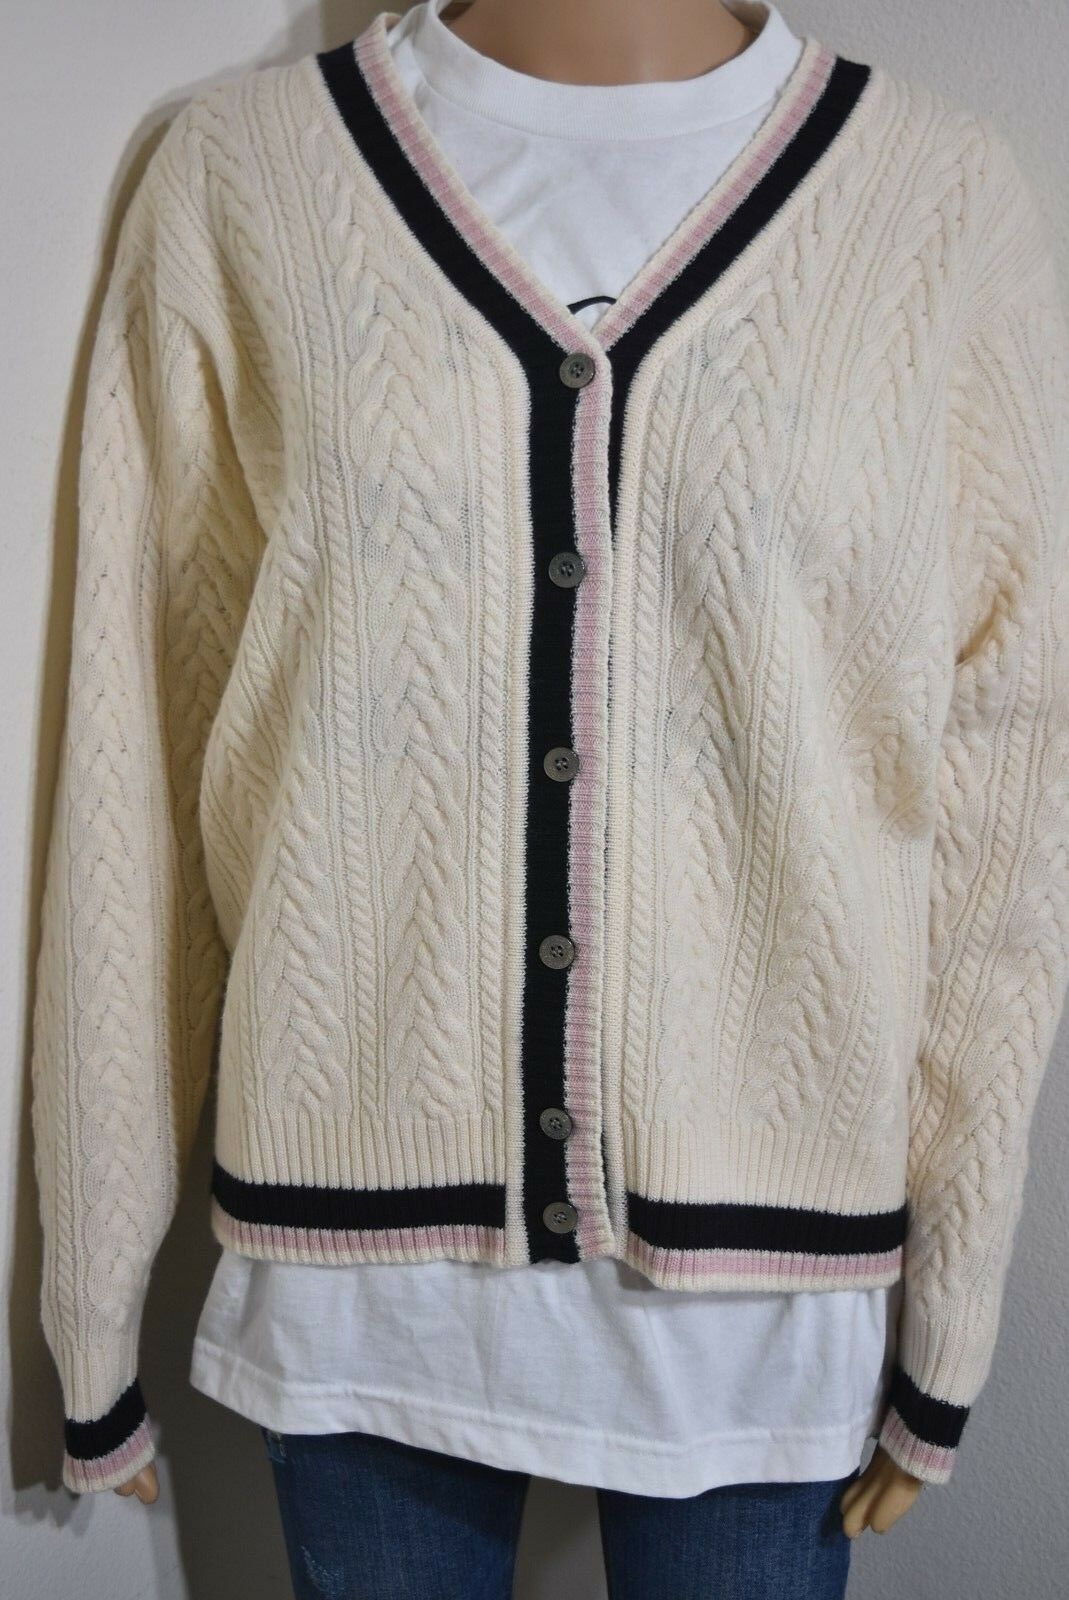 Vtg 90s Evan Picone Cardigan Sweater stripe Wool Ivory Tennis Cable Knit Small